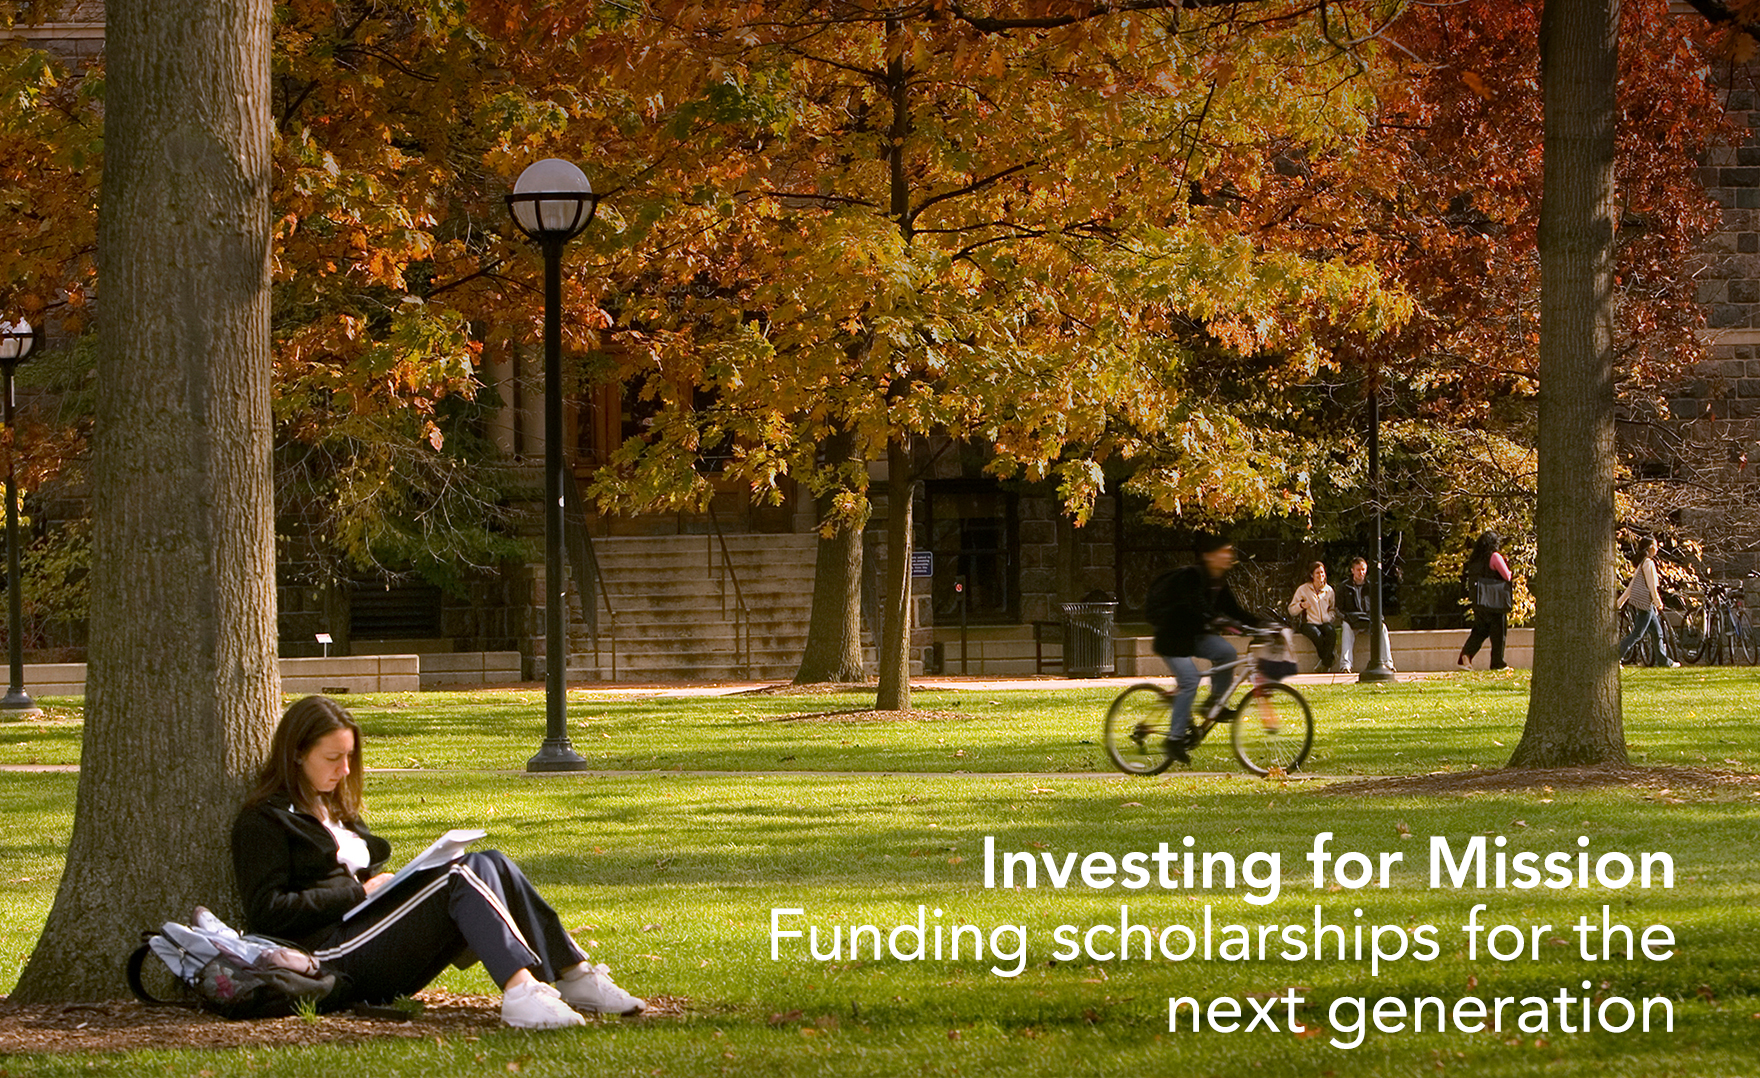 Investing for Mission | Funding scholarships for the next generation